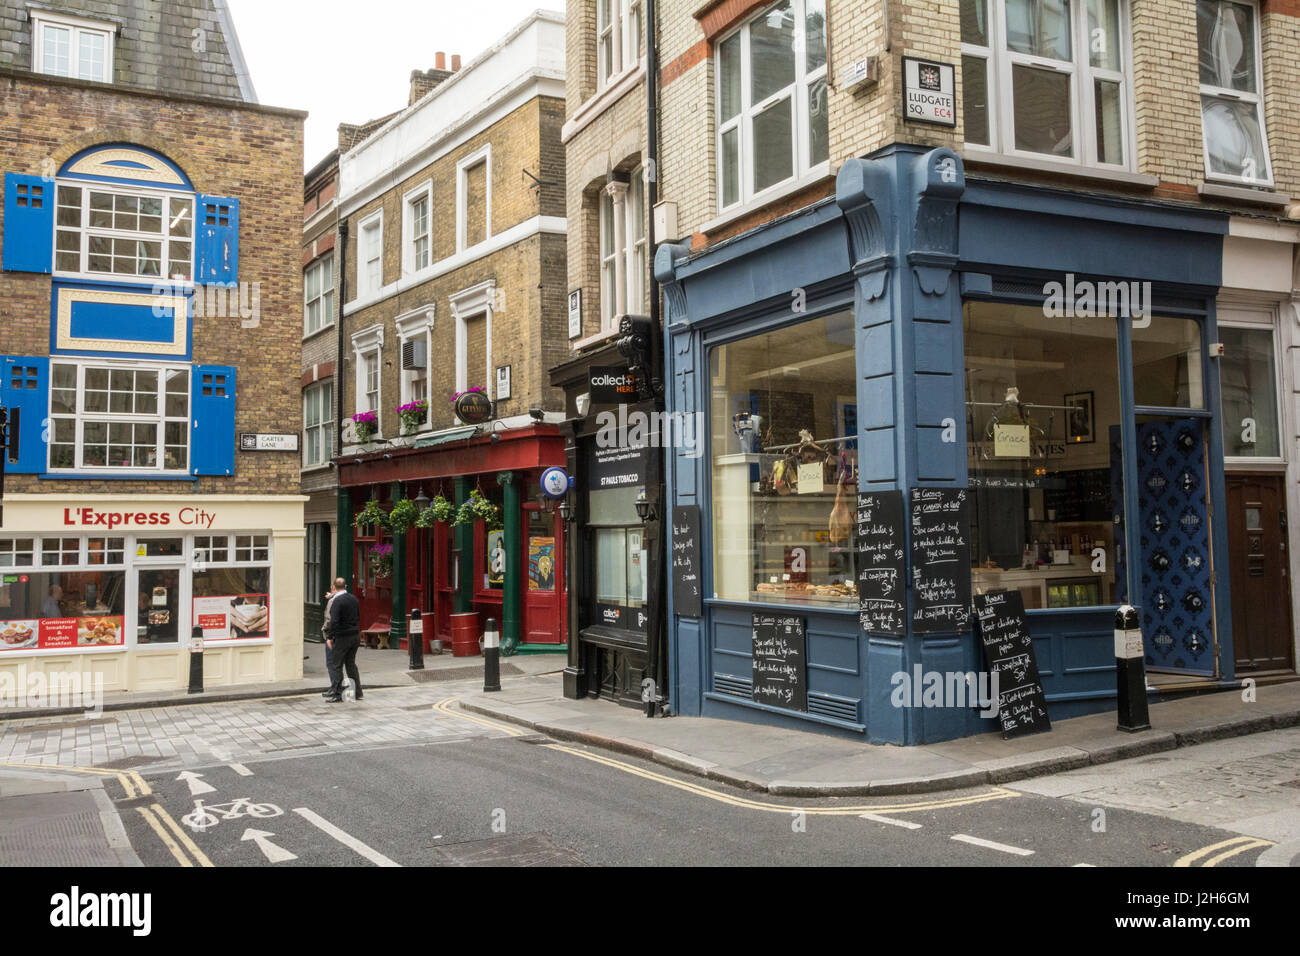 Small shops on Creed Lane in London, near St Paul's Cathedral - Stock Image